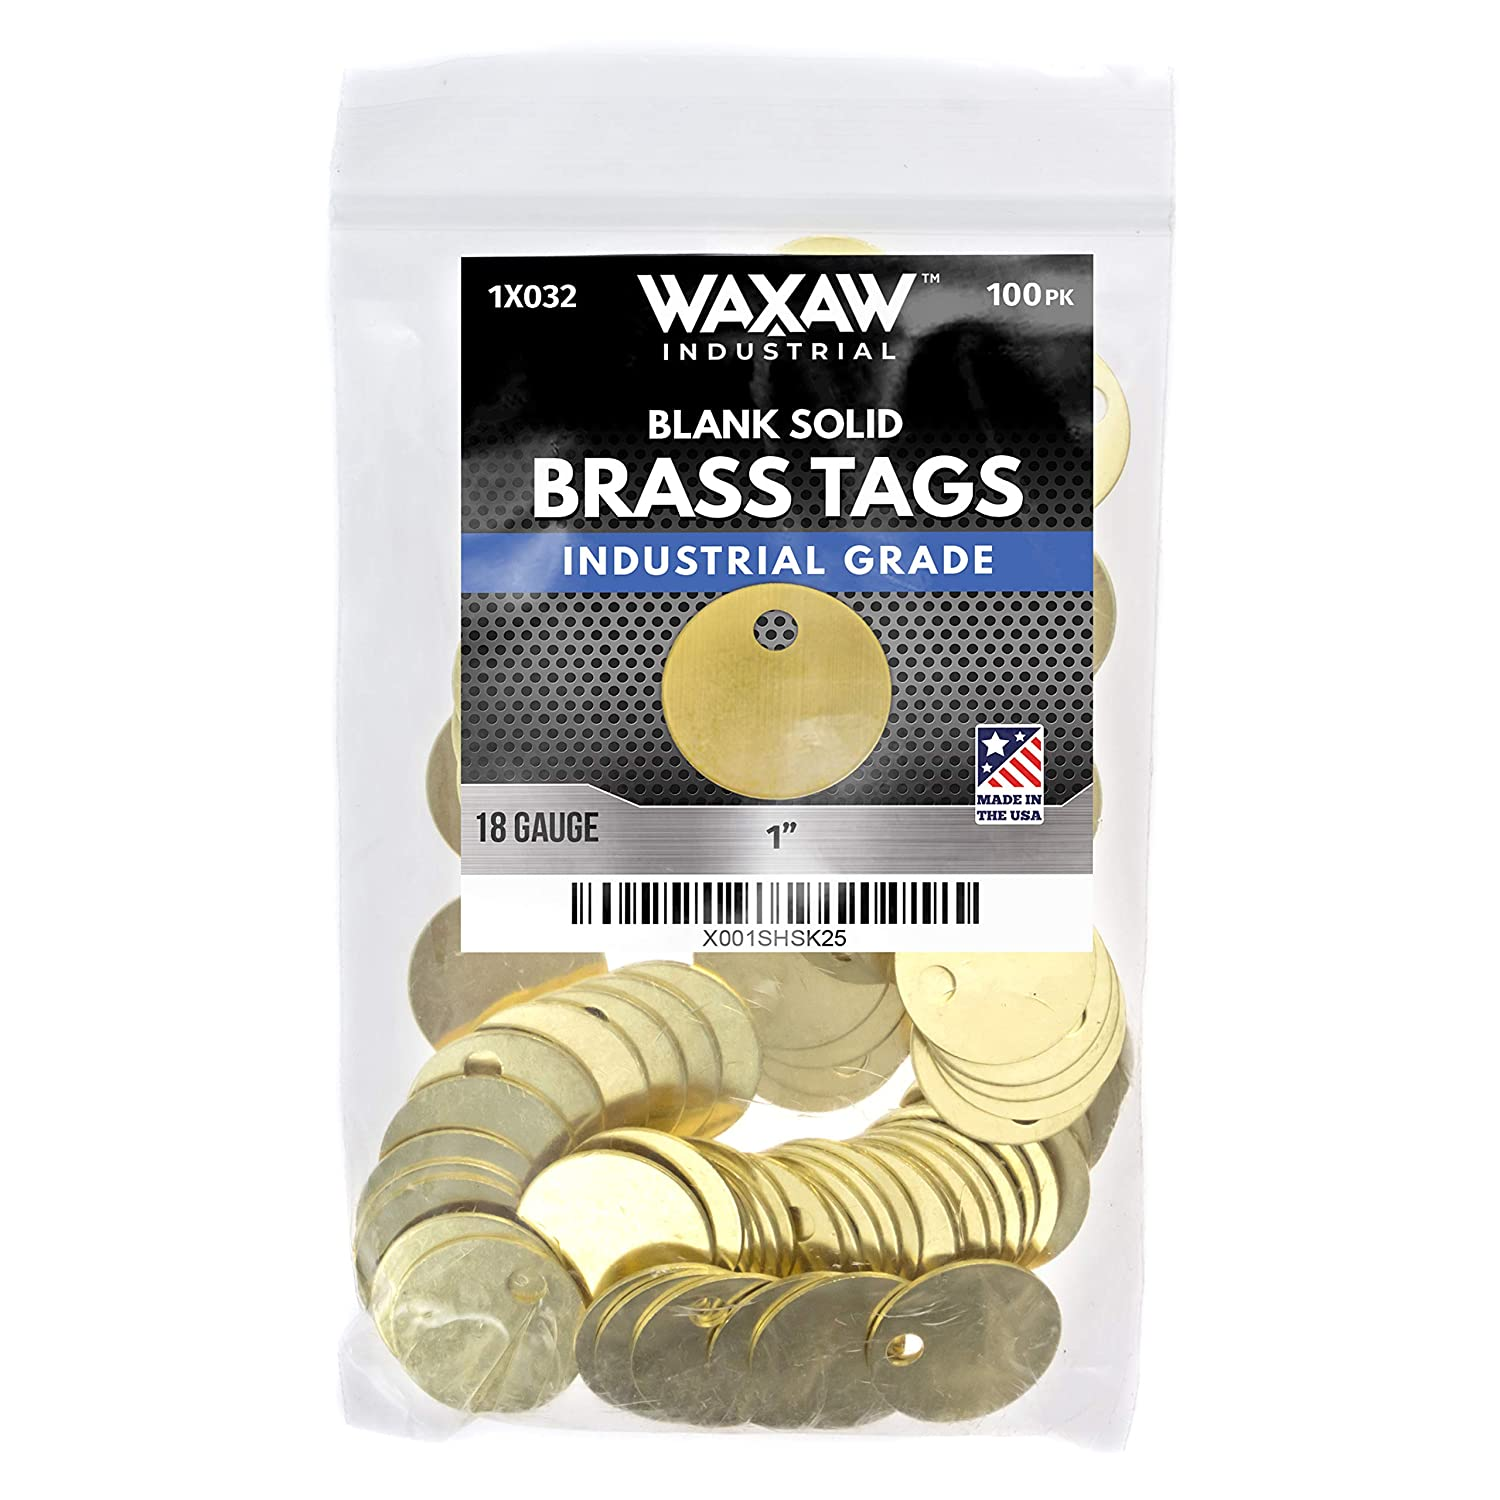 """1"""" Solid Brass Stamping Tags (100 Pack) Industrial Grade 0.040"""" Blank Chits for Pipe Valves, Keys, Tool and Equipment Labeling 